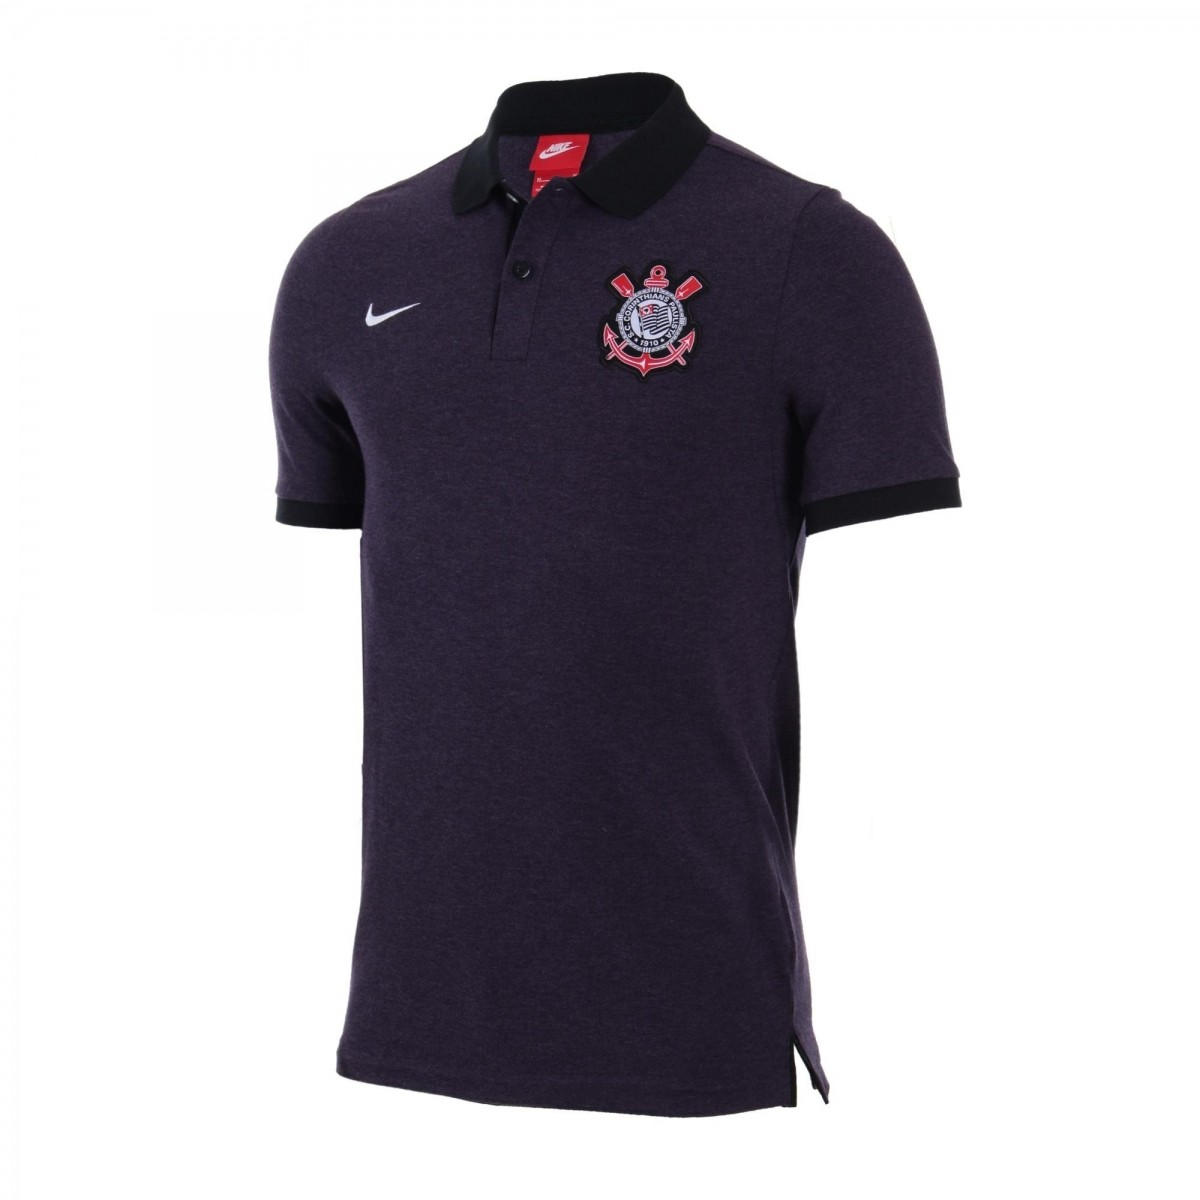 Camisa Polo Nike Corinthians Authenting Gs 2016